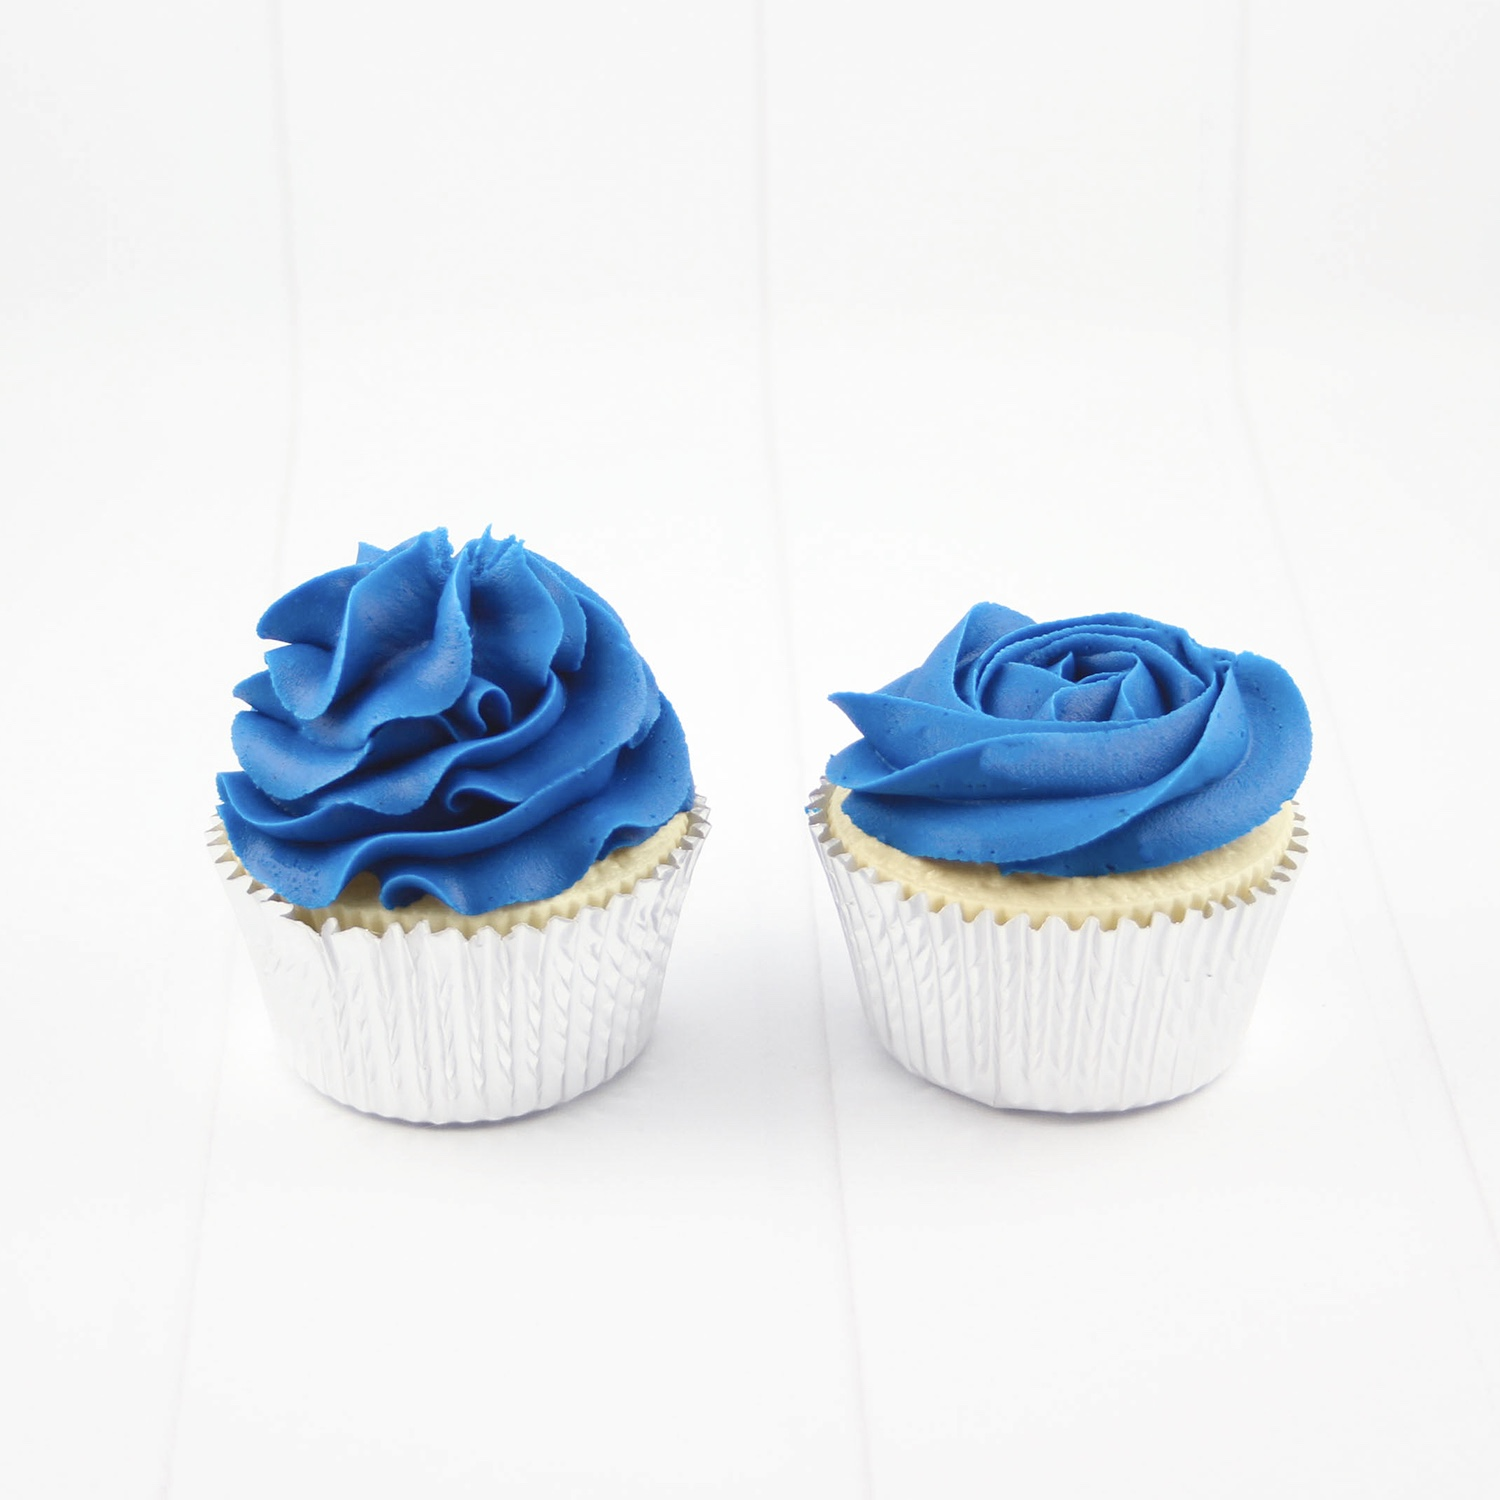 Berry Blue Frosted Cupcakes